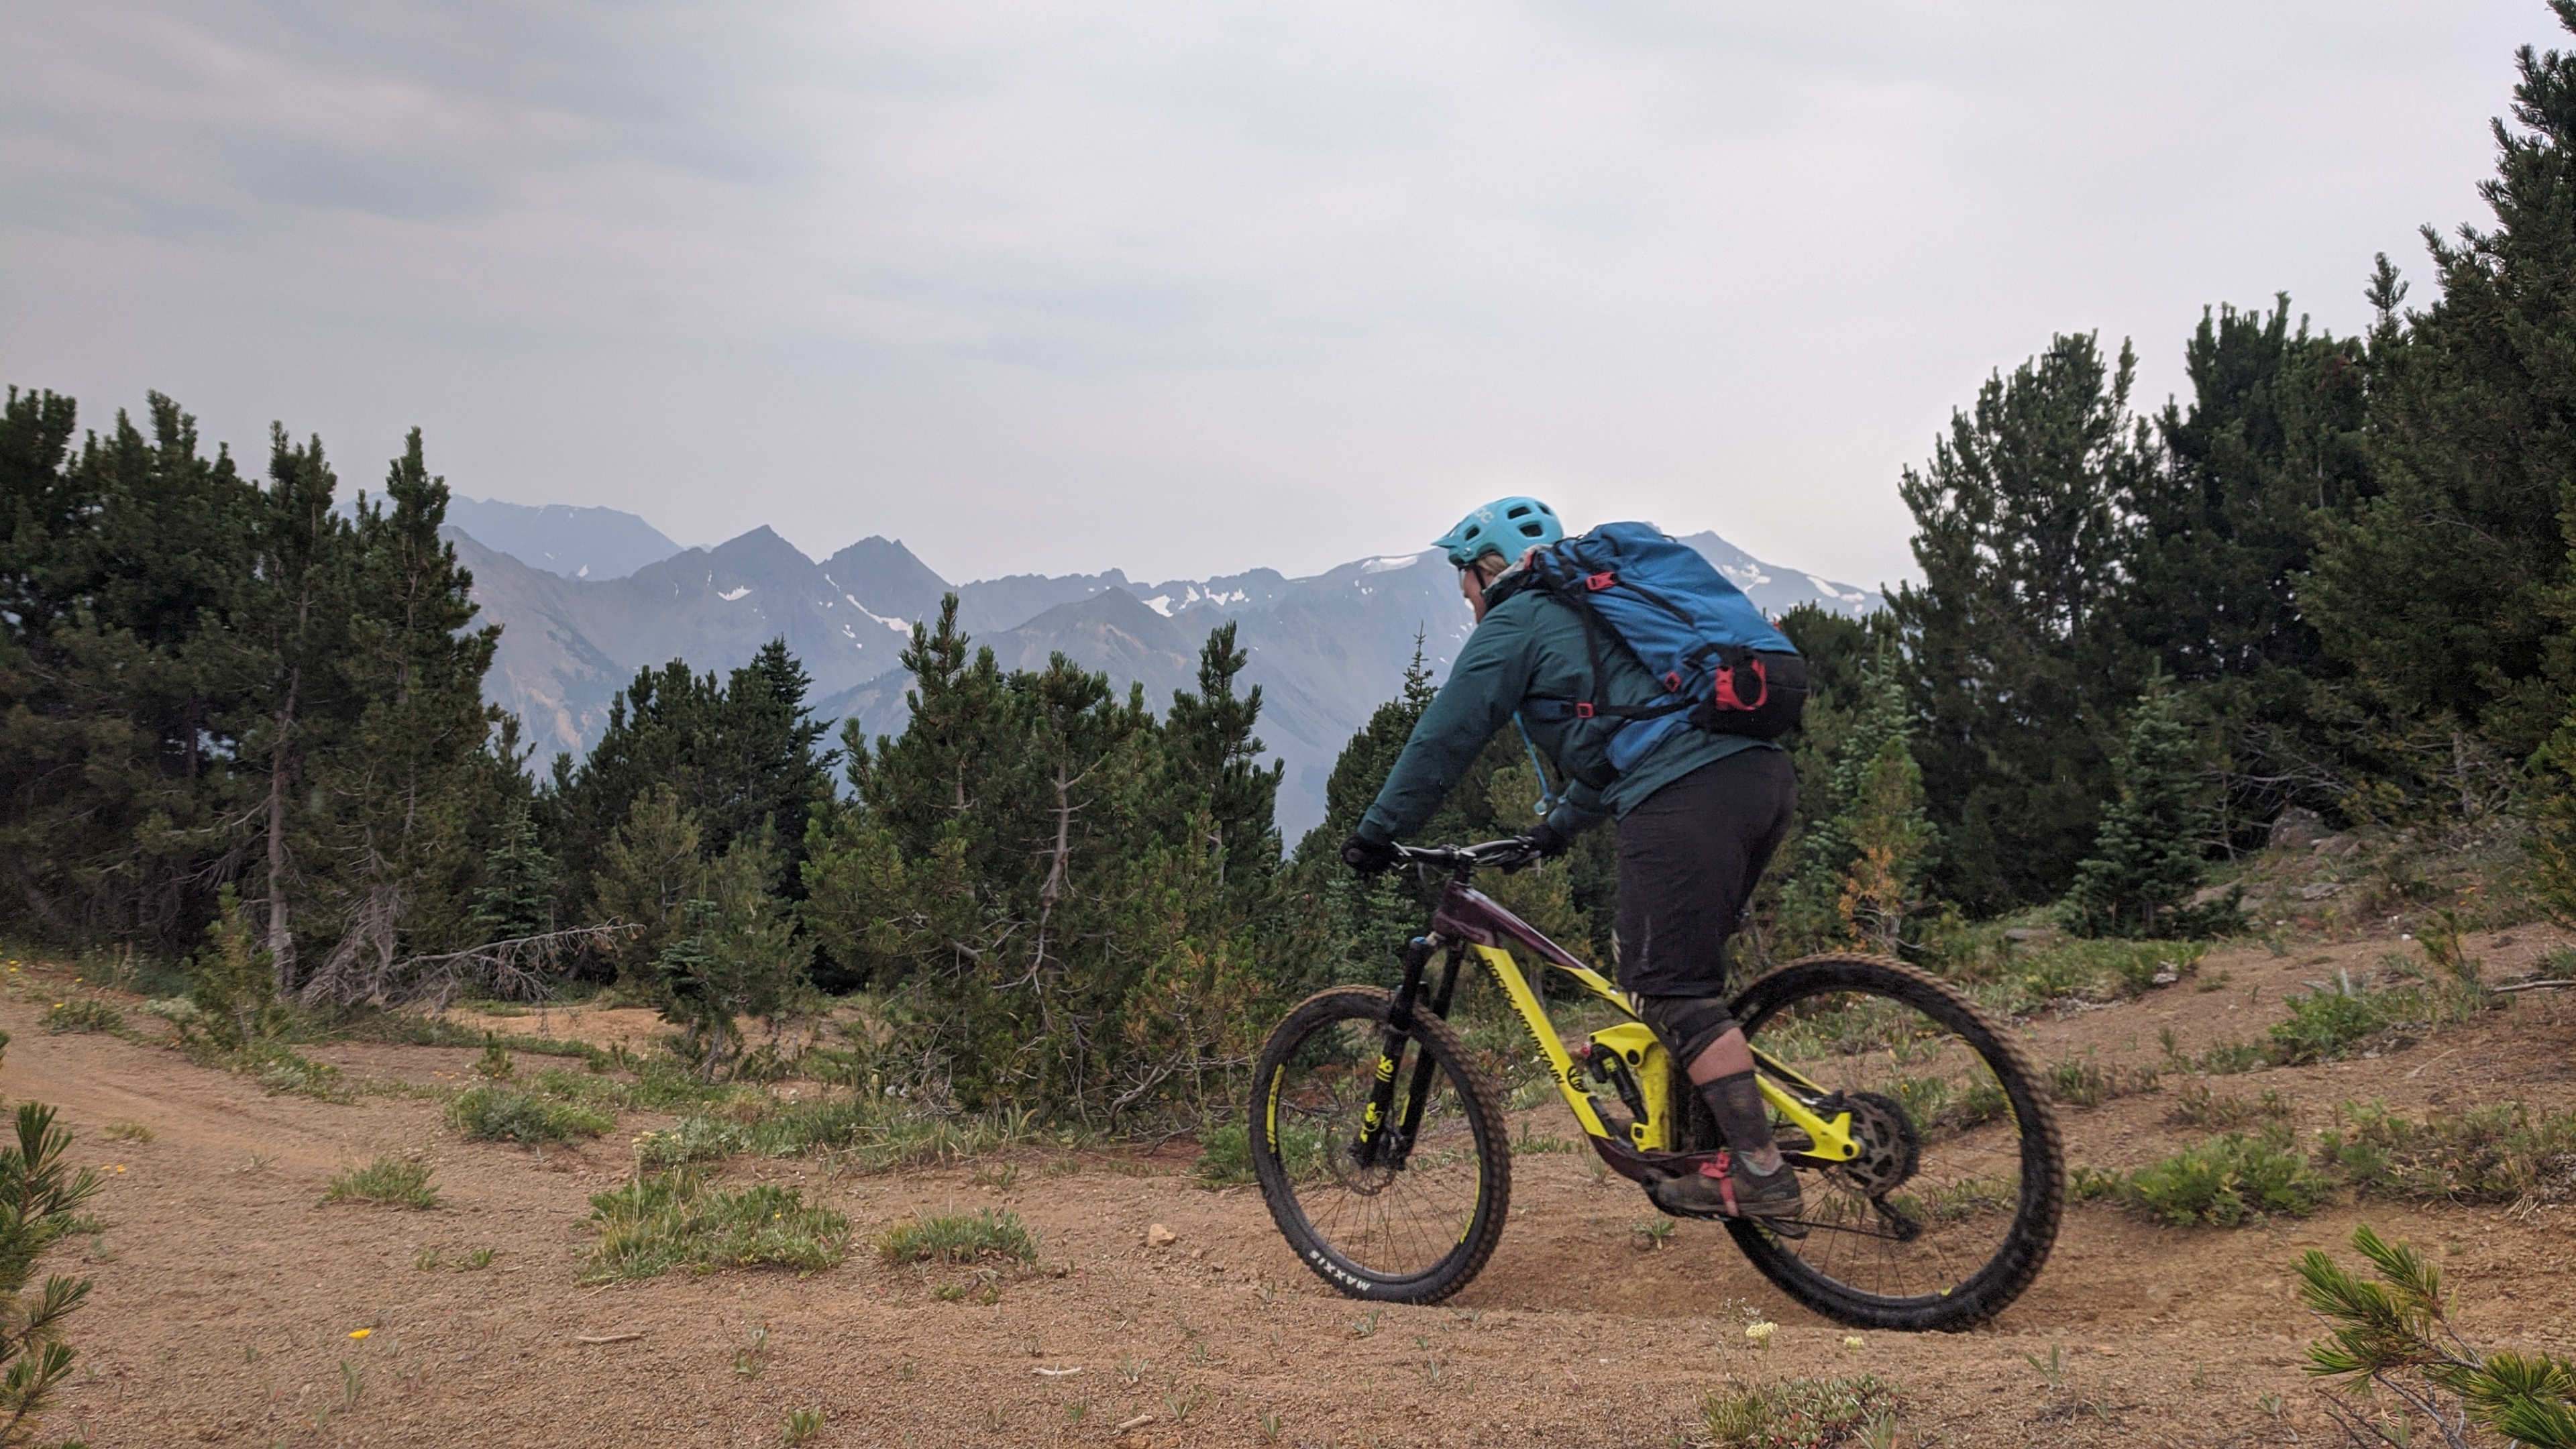 A Tyax group rider shredding the trails near Deer Pass. Photo by Melissa.